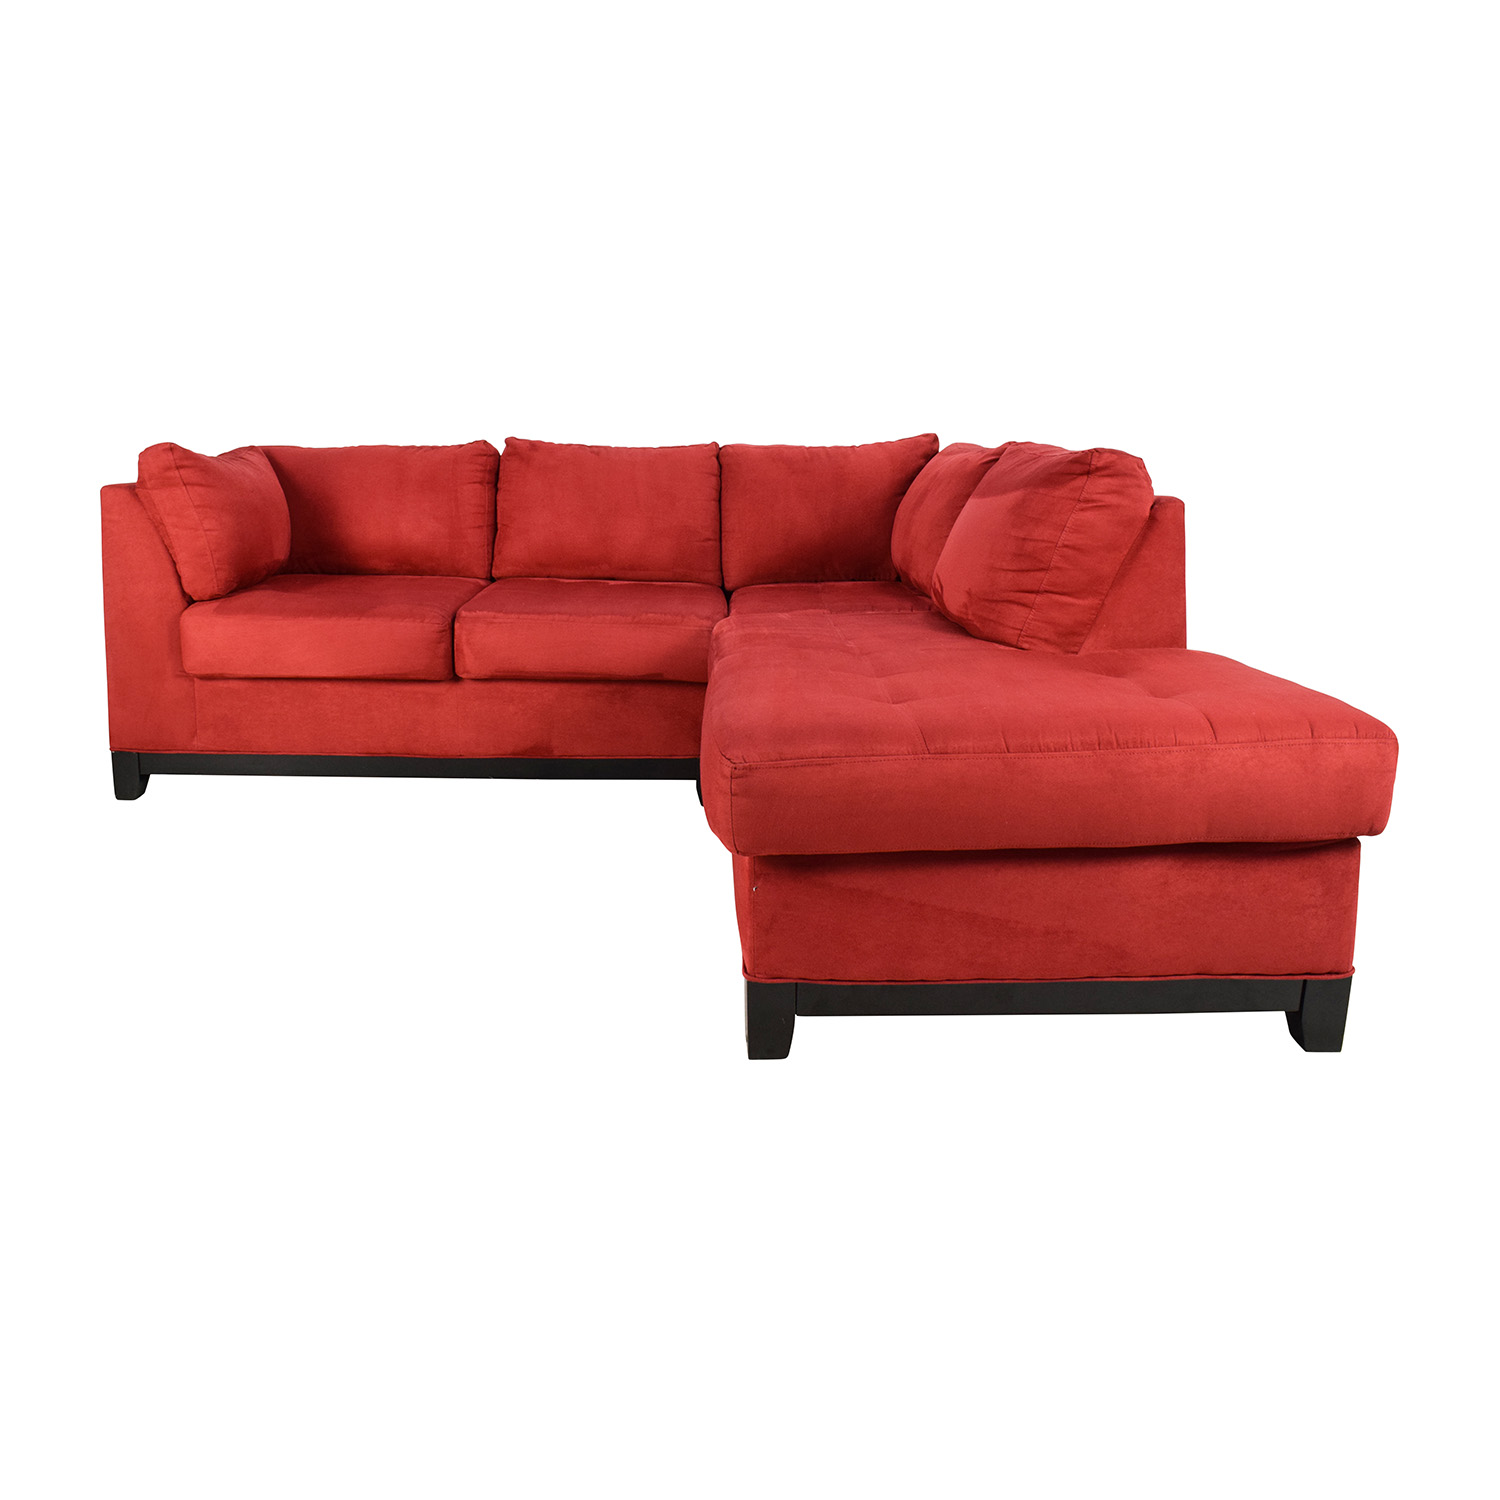 Raymour & Flanigan Zella Red Sectional / Sofas